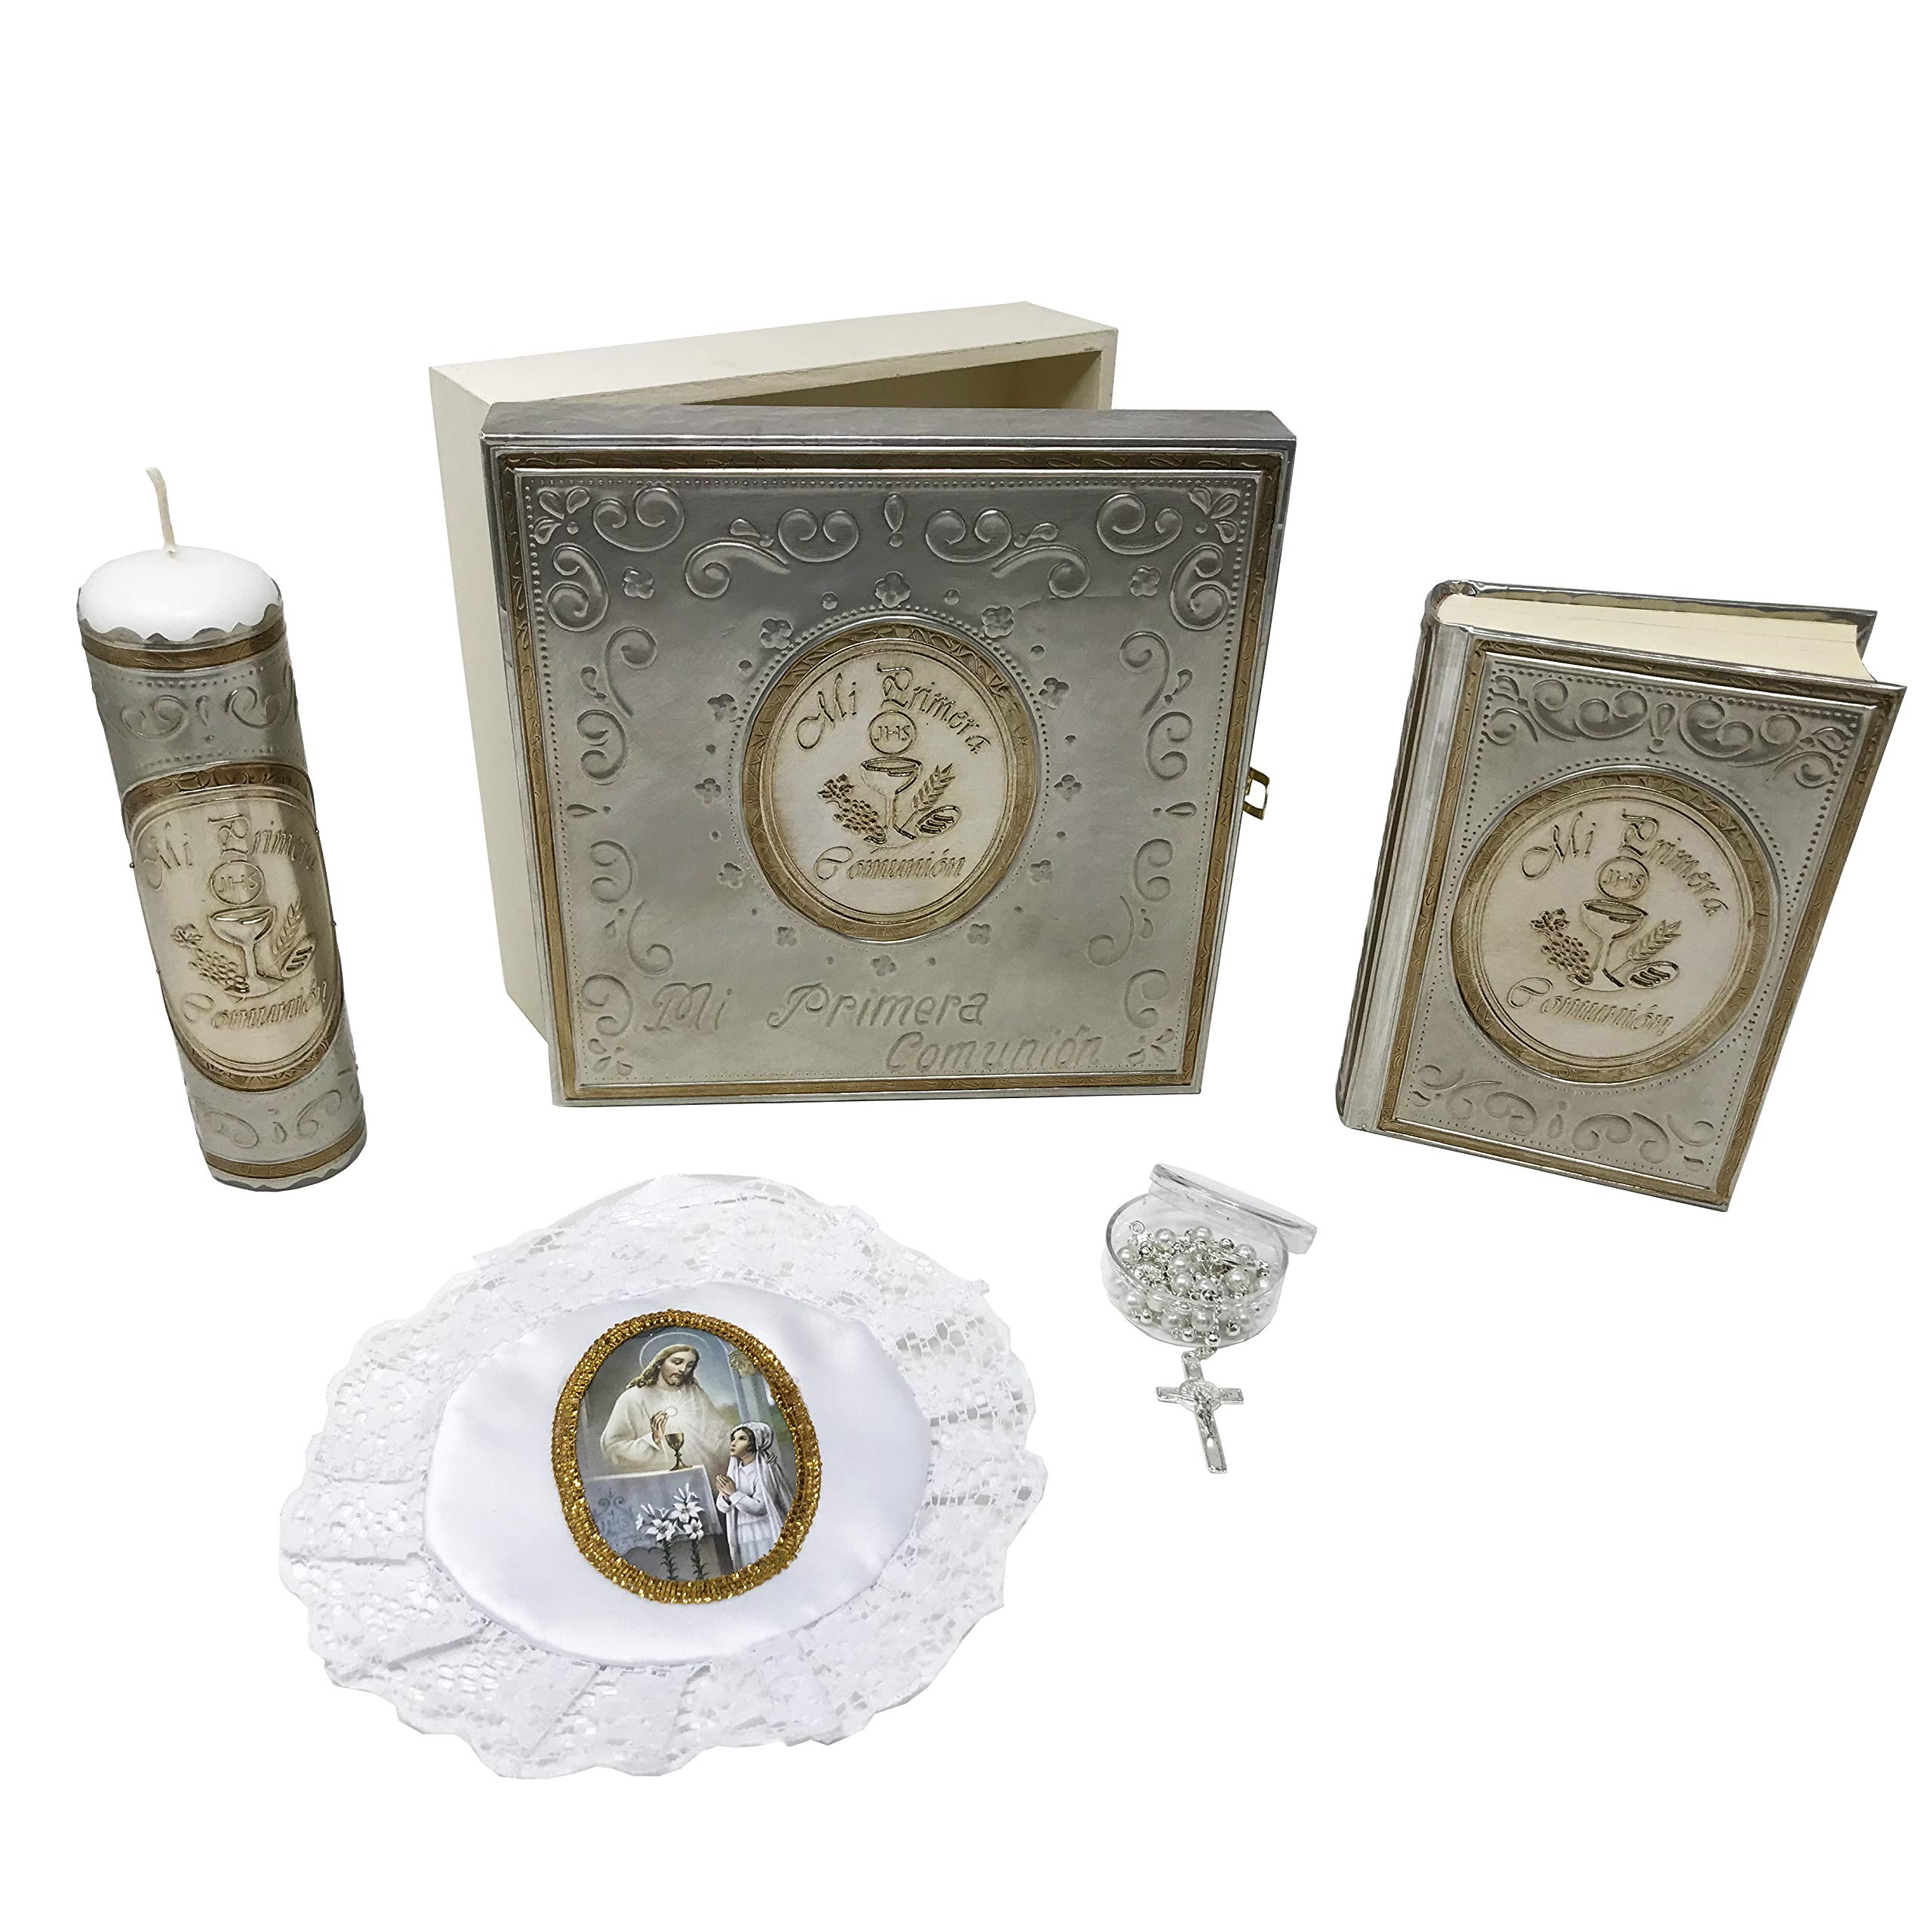 PREMIUM Catholic First Communion Kit in a Repujado Box with Candle, Rosary, Bible (Spanish) and Almoner for Girls. Handmade in Mexico Gift for Godparents. Kit de Primera Comunión.